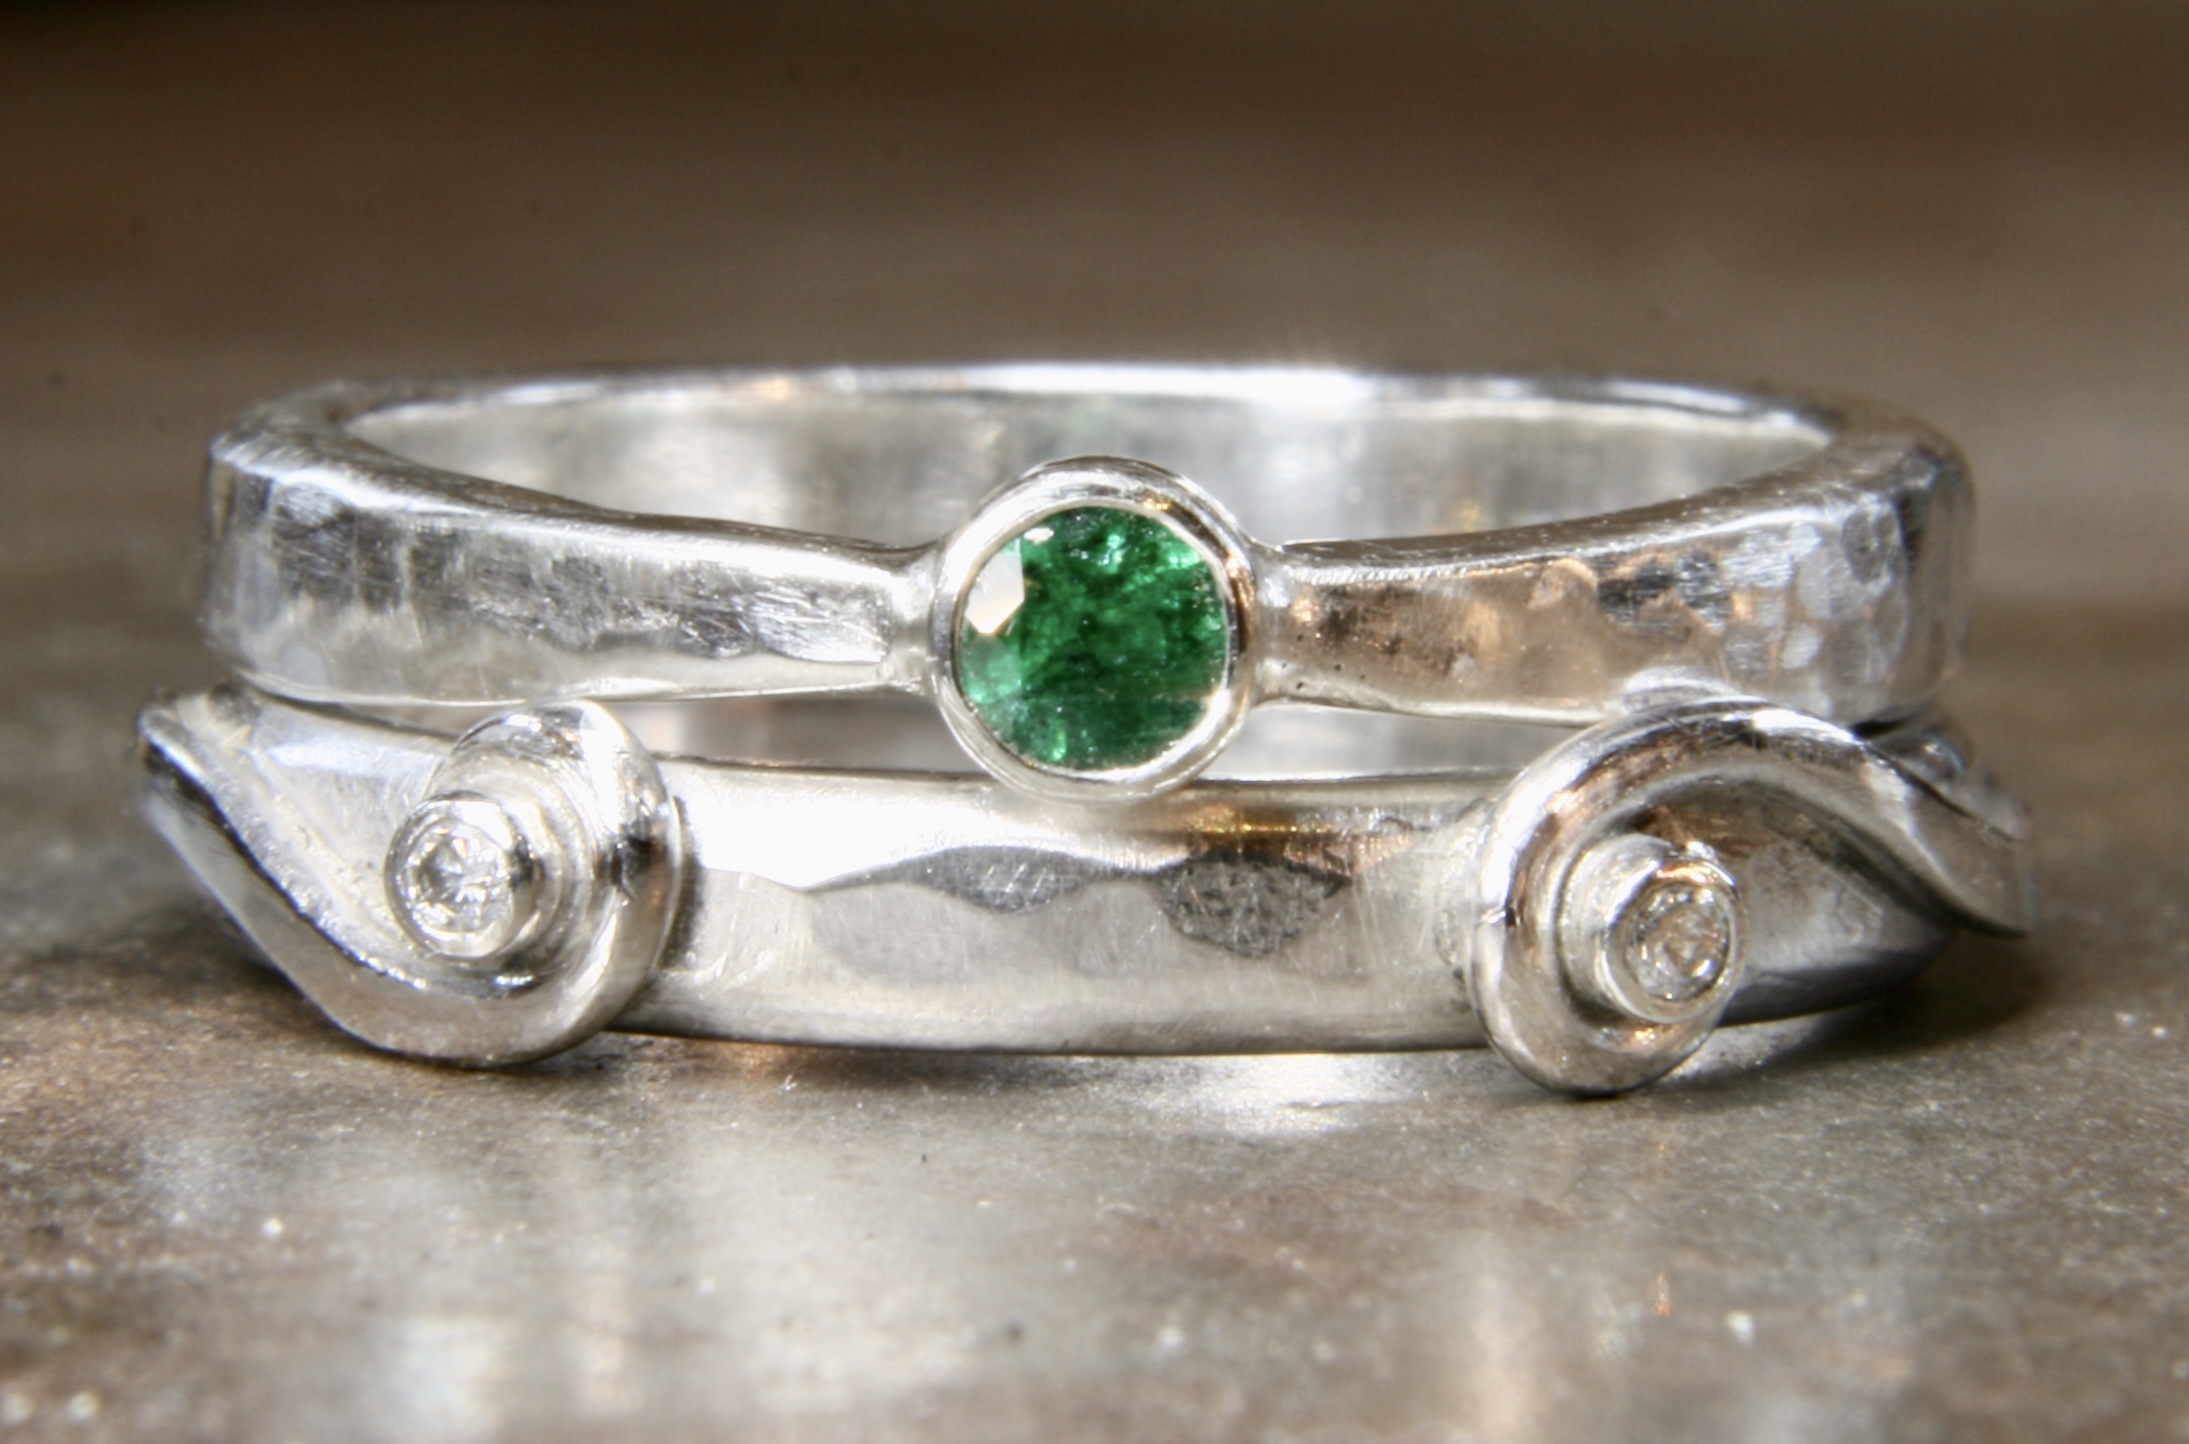 Recycled silver, diamond and emerald